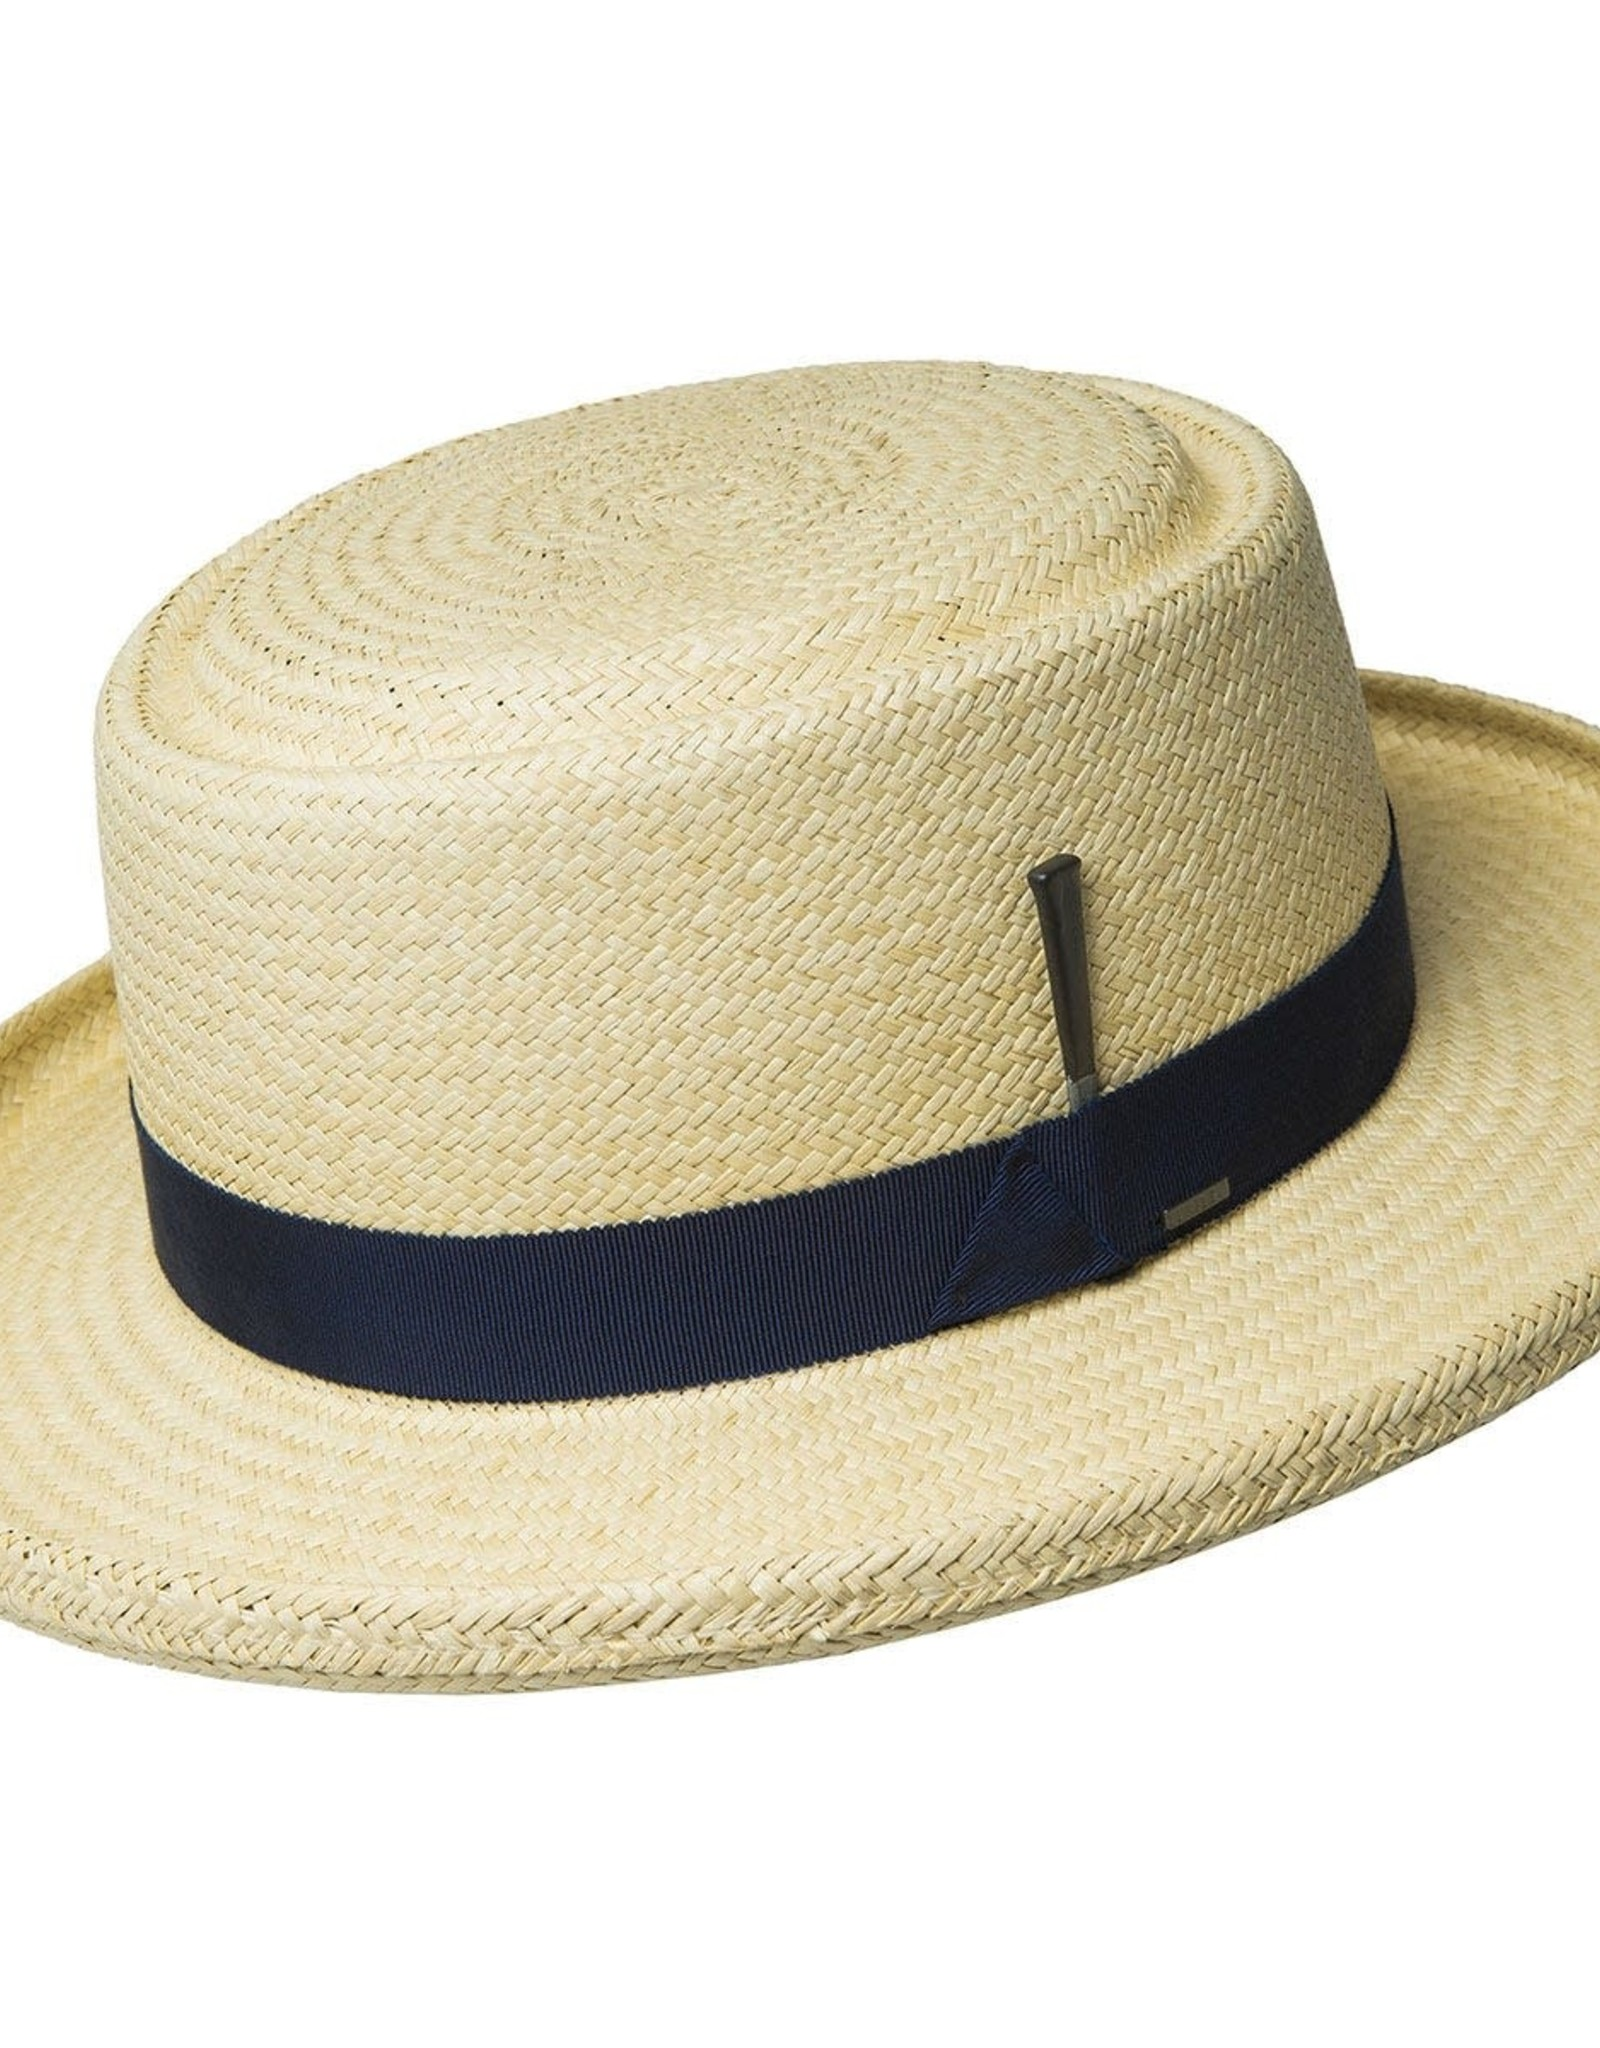 Bailey Hat Co. HAT-FEDORA-CREED NATURAL LG